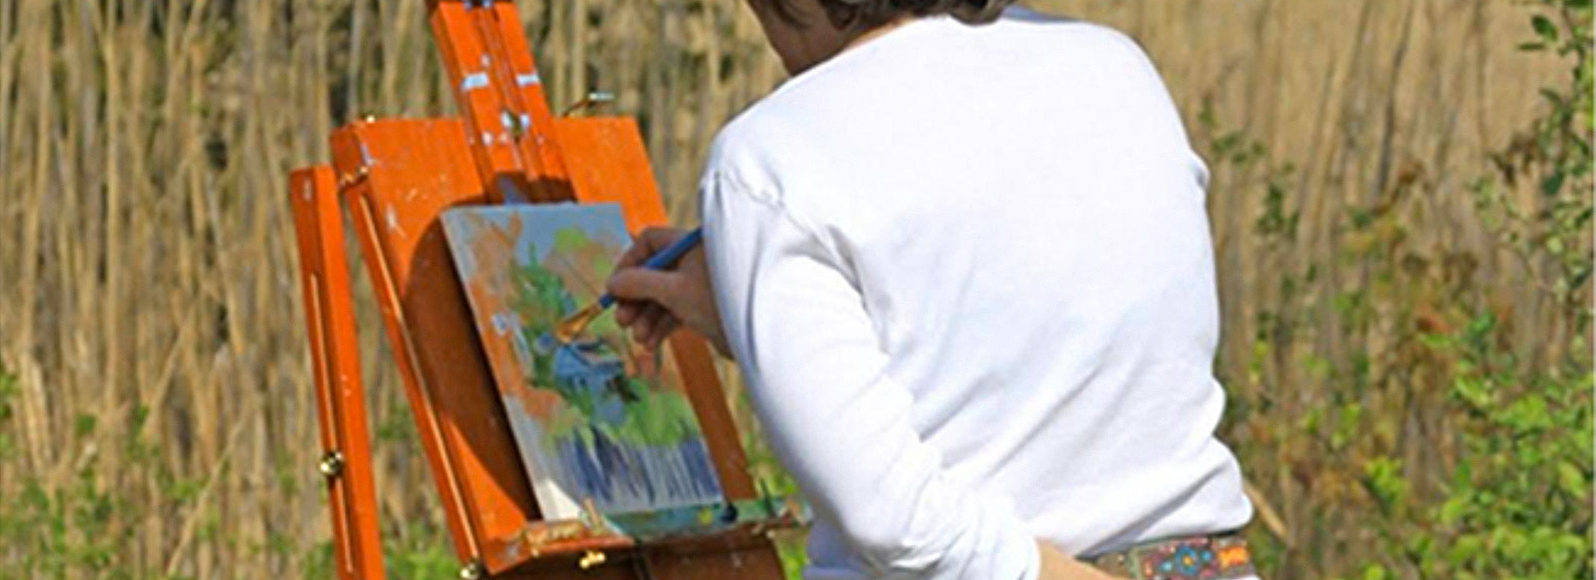 Hull Artists is a artist collective located in the town of Hull on Massachusetts' exquisite South Shore.